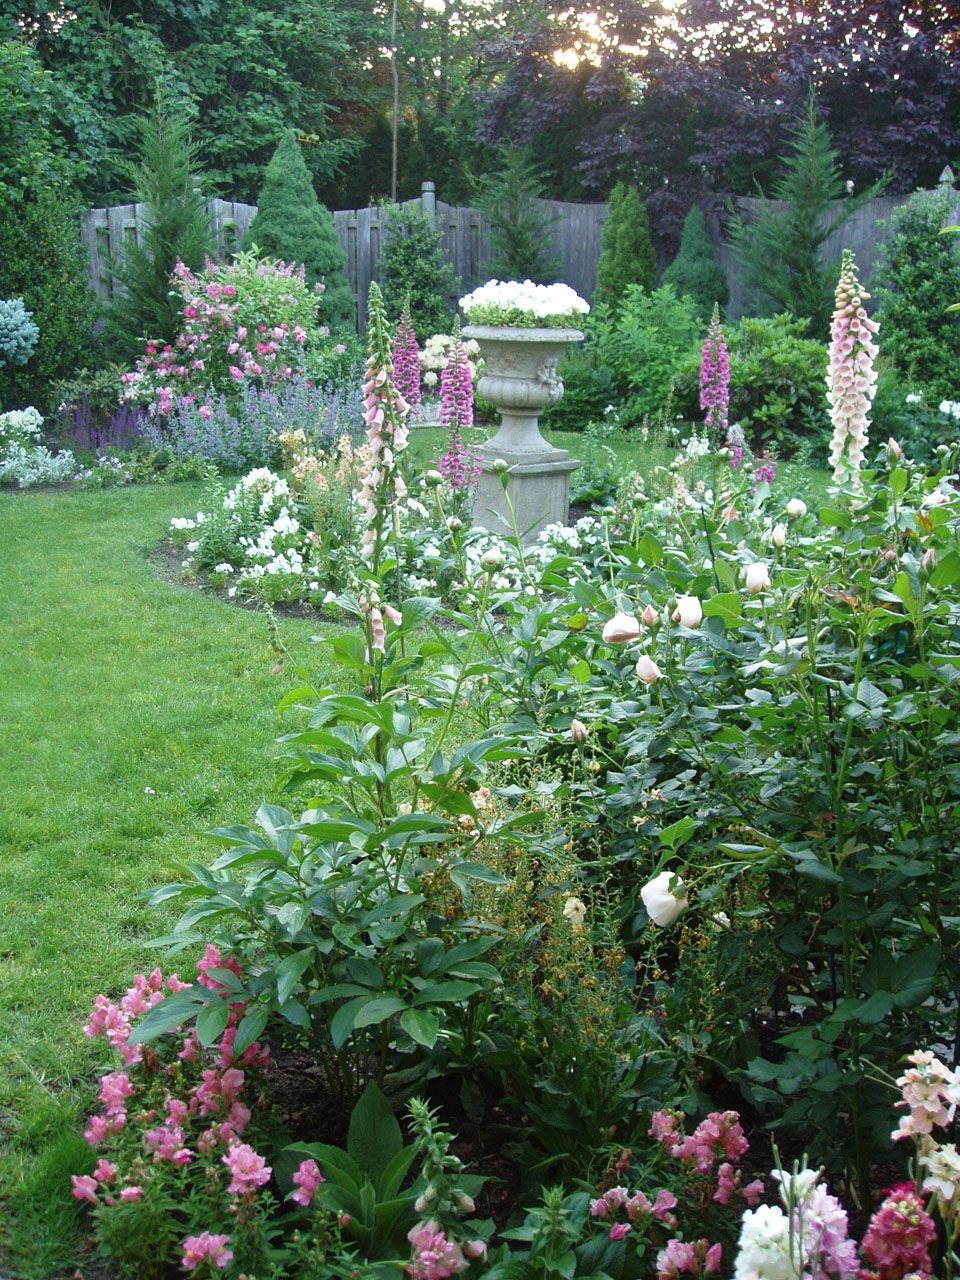 Garden style the english cottage garden where the old - English Rose Garden And Immediately Be Greeted By The Tall And Elegant Pale Pink